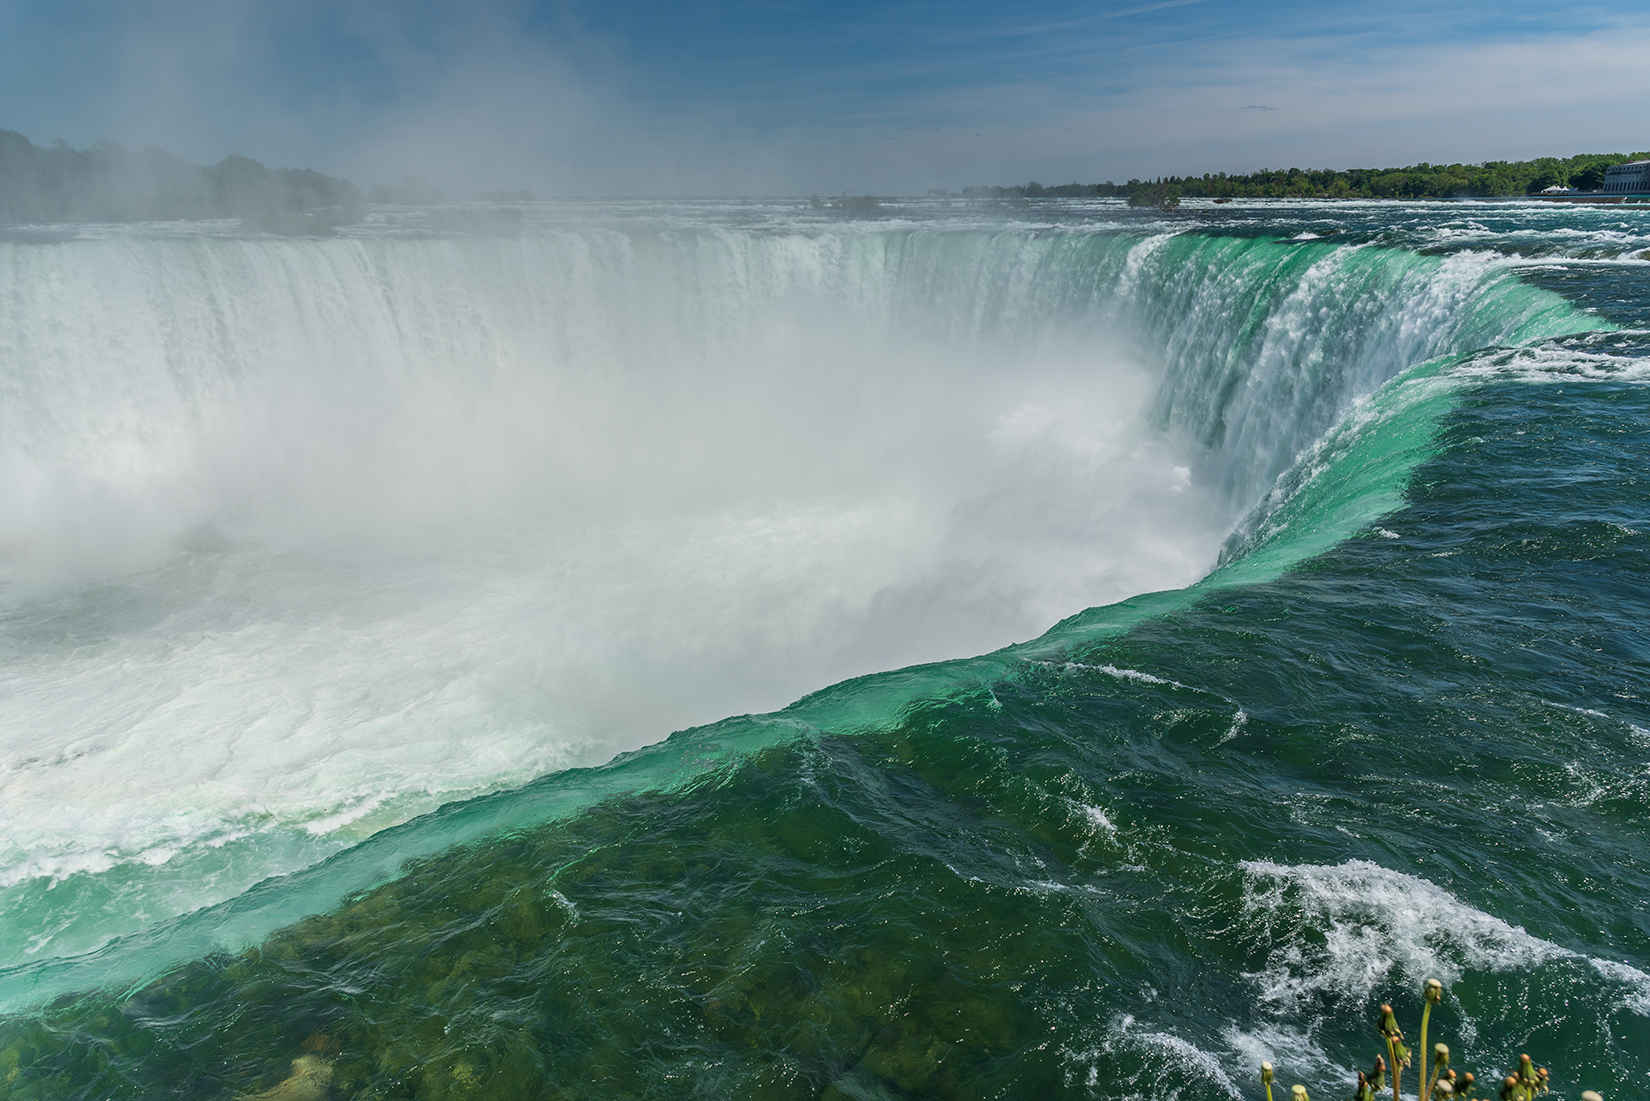 The Niagara Falls viewpoint within feet of the Horseshoe Falls.